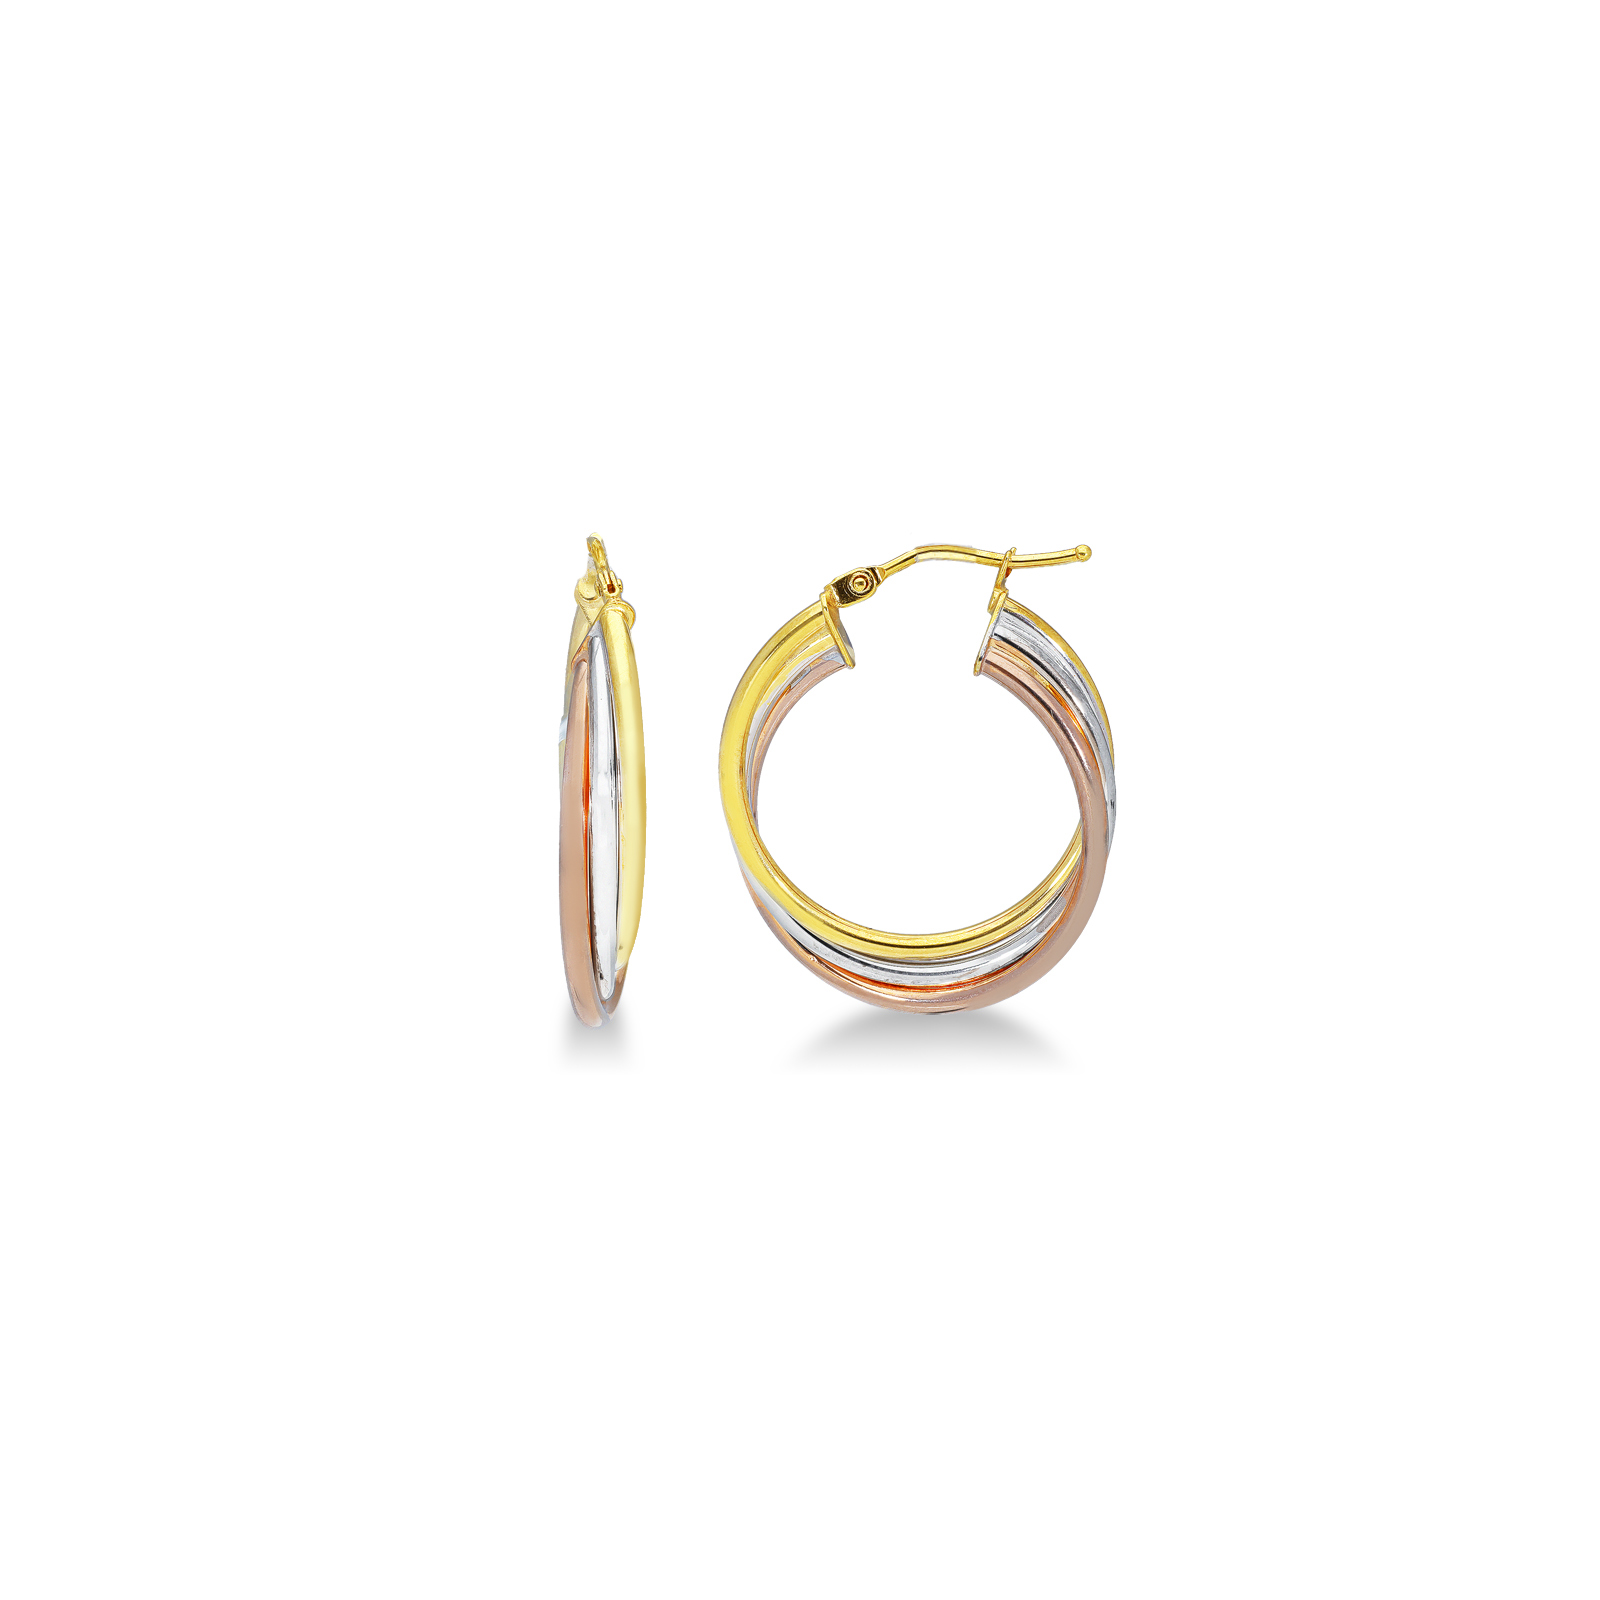 Earrings 18k White Gold, Gold, Rose Gold with round elements